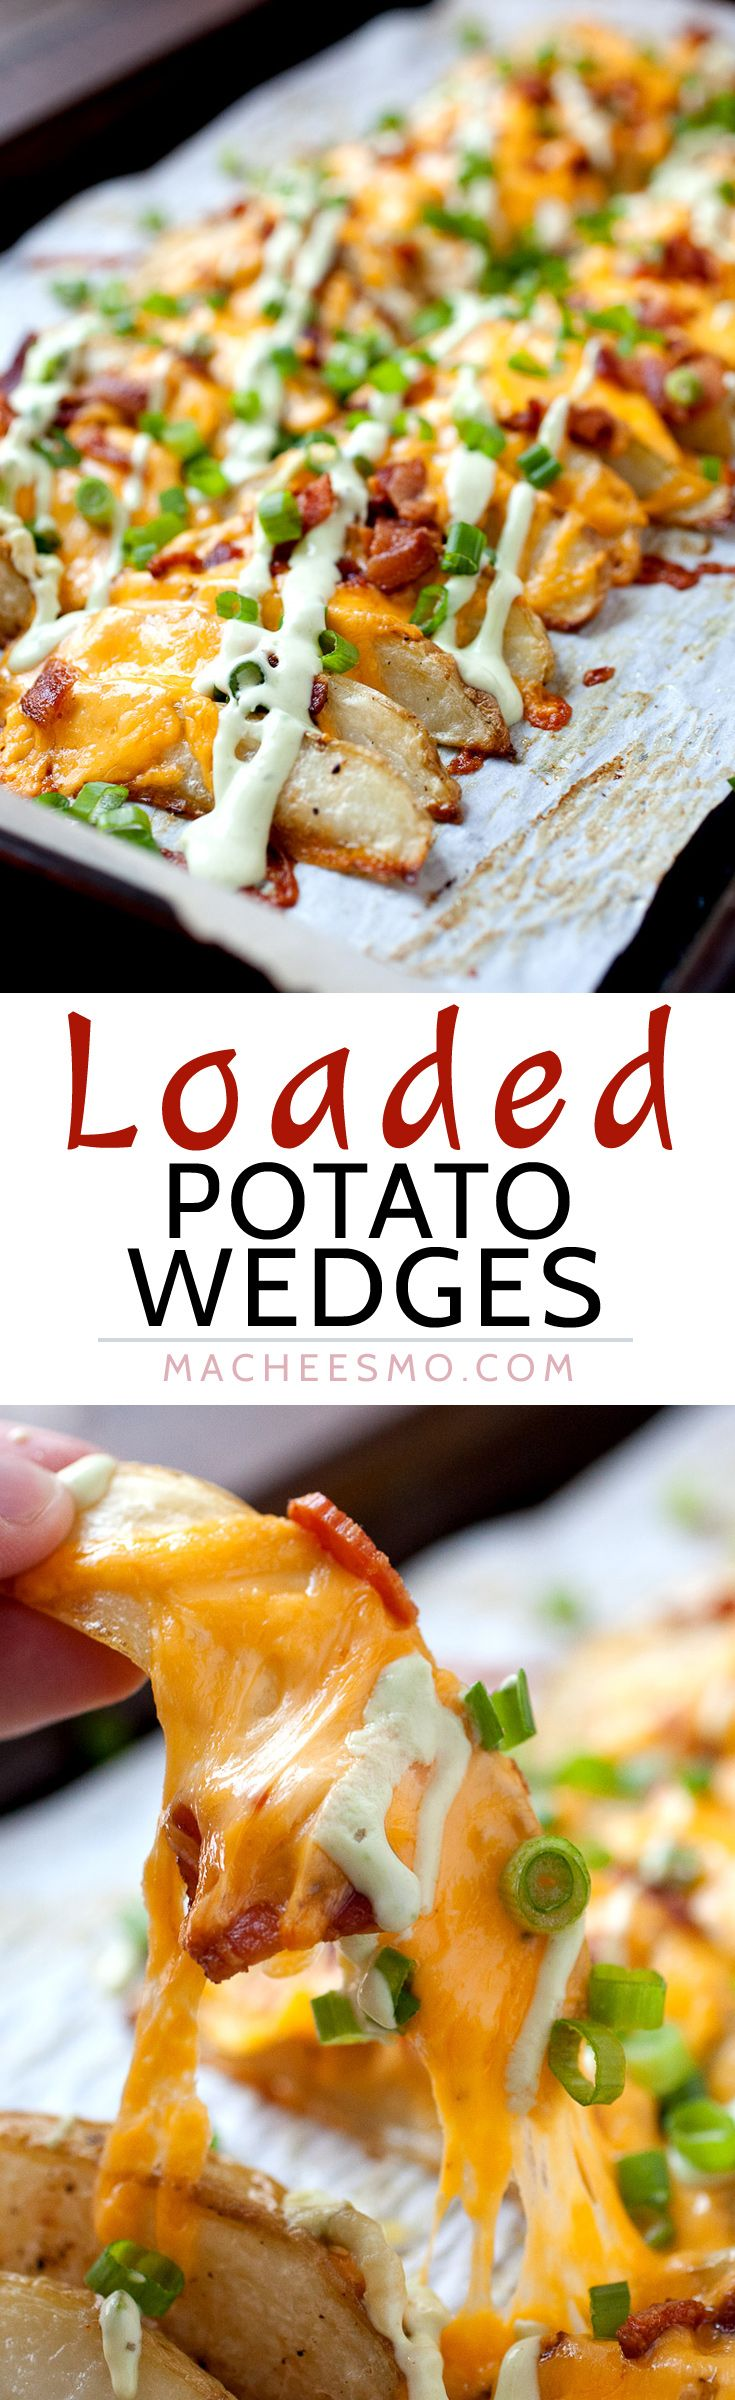 Loaded Potato Wedges – Appetizer? Side dish? Main meal? These completely loaded baked potato wedges have c